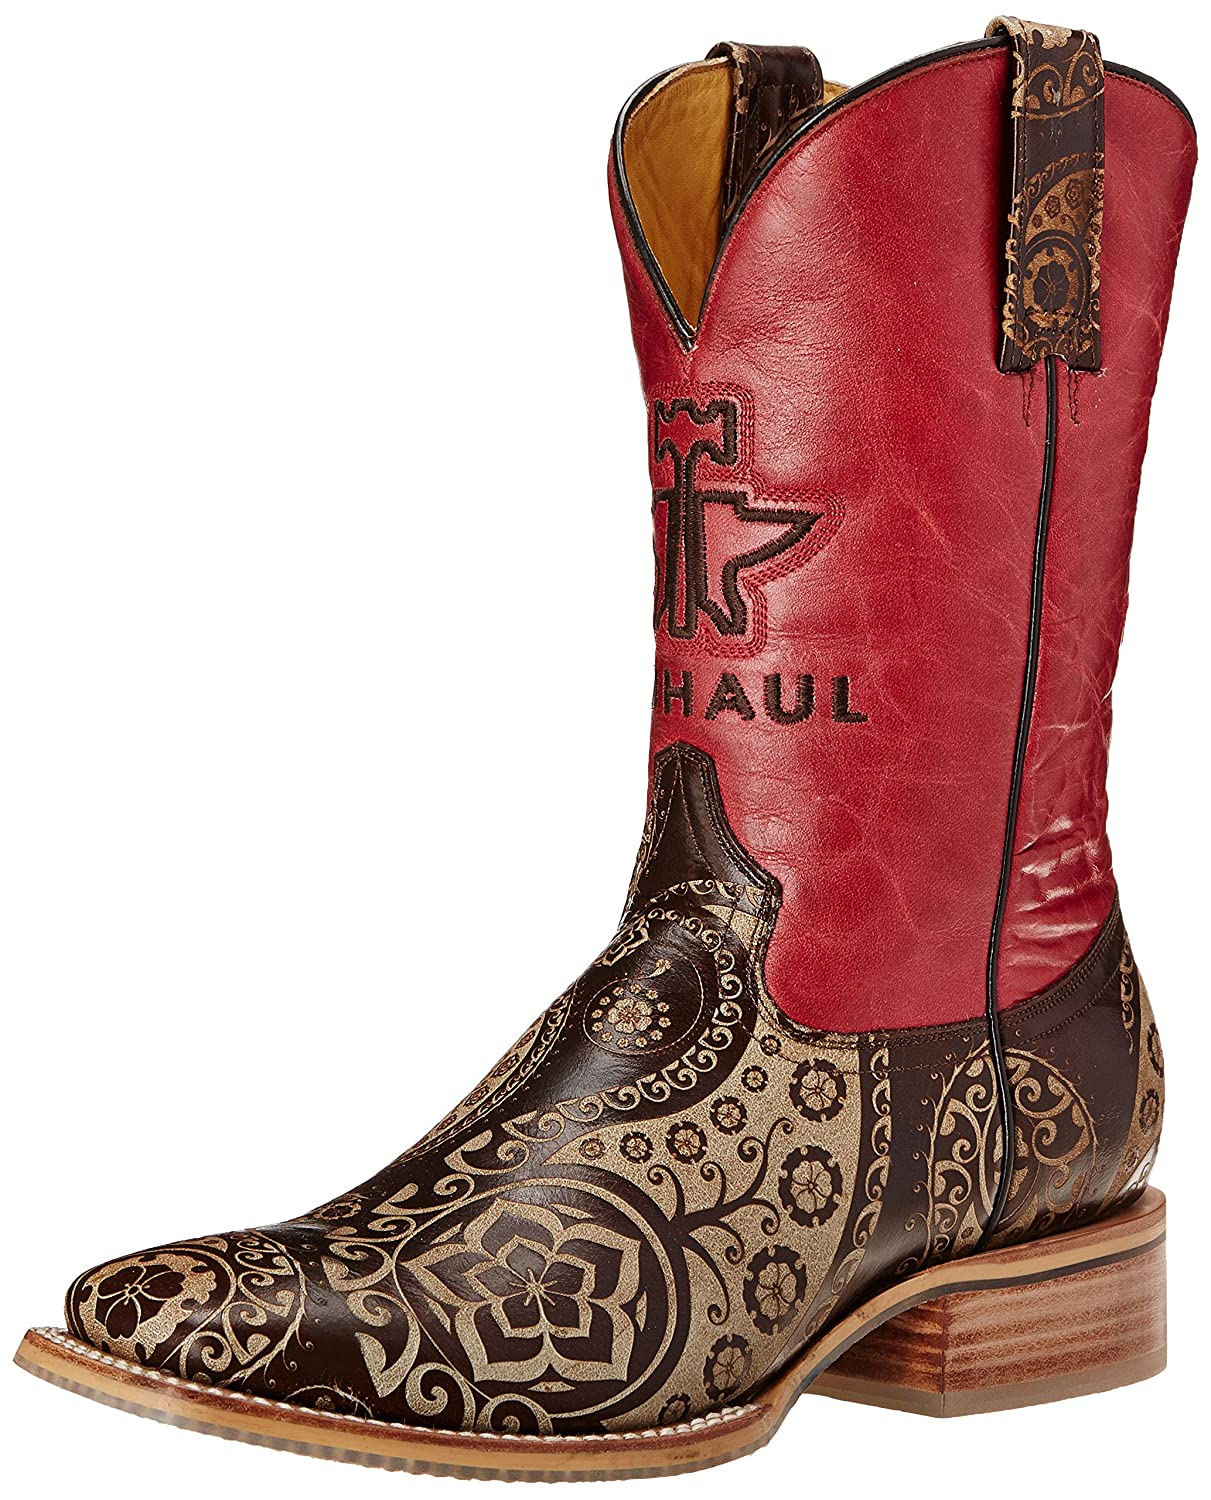 Tin Haul Shoes Women's Paisley Rocks Western Boot B00SNQVCHI 10 B(M) US|Tan/Red